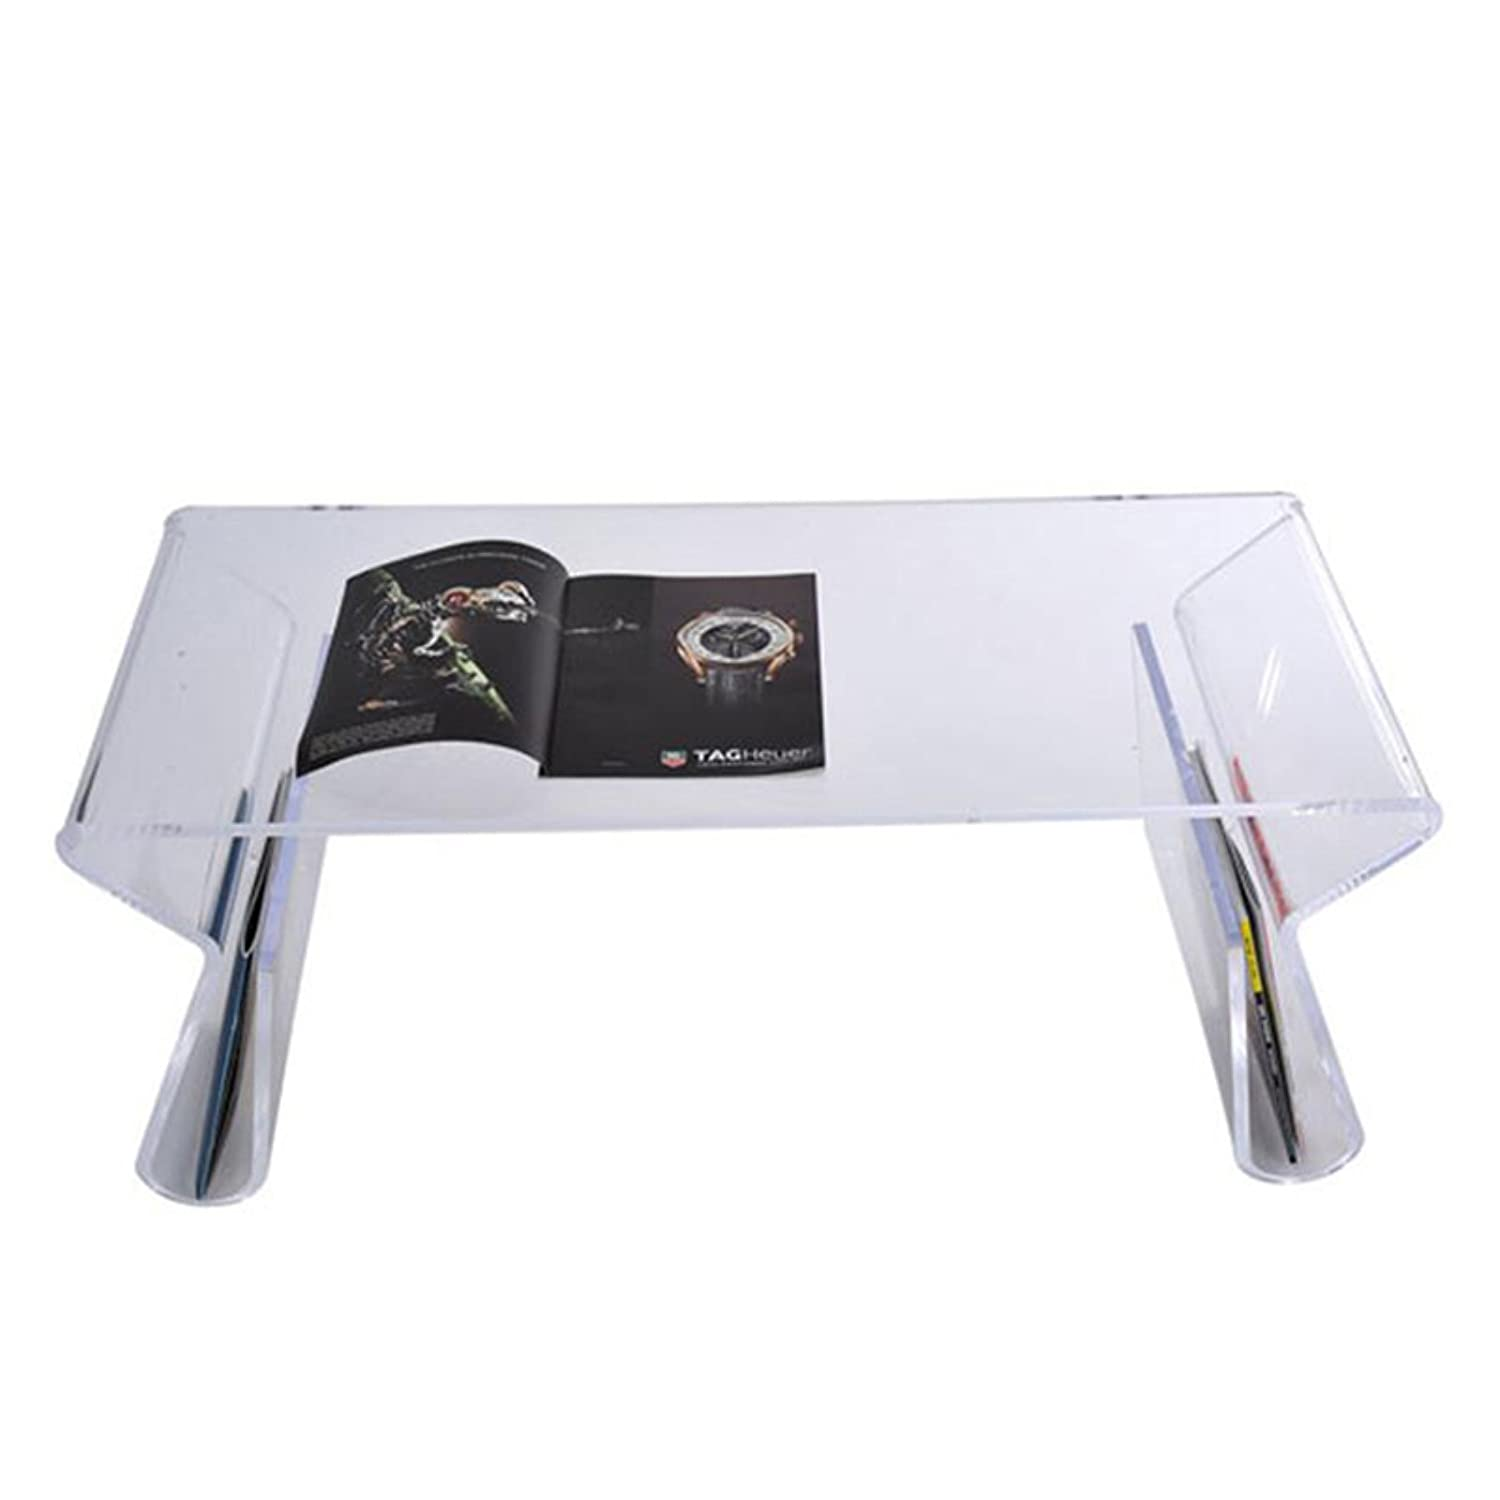 Amazon Hom 38 in Modern Acrylic Coffee Table Kitchen